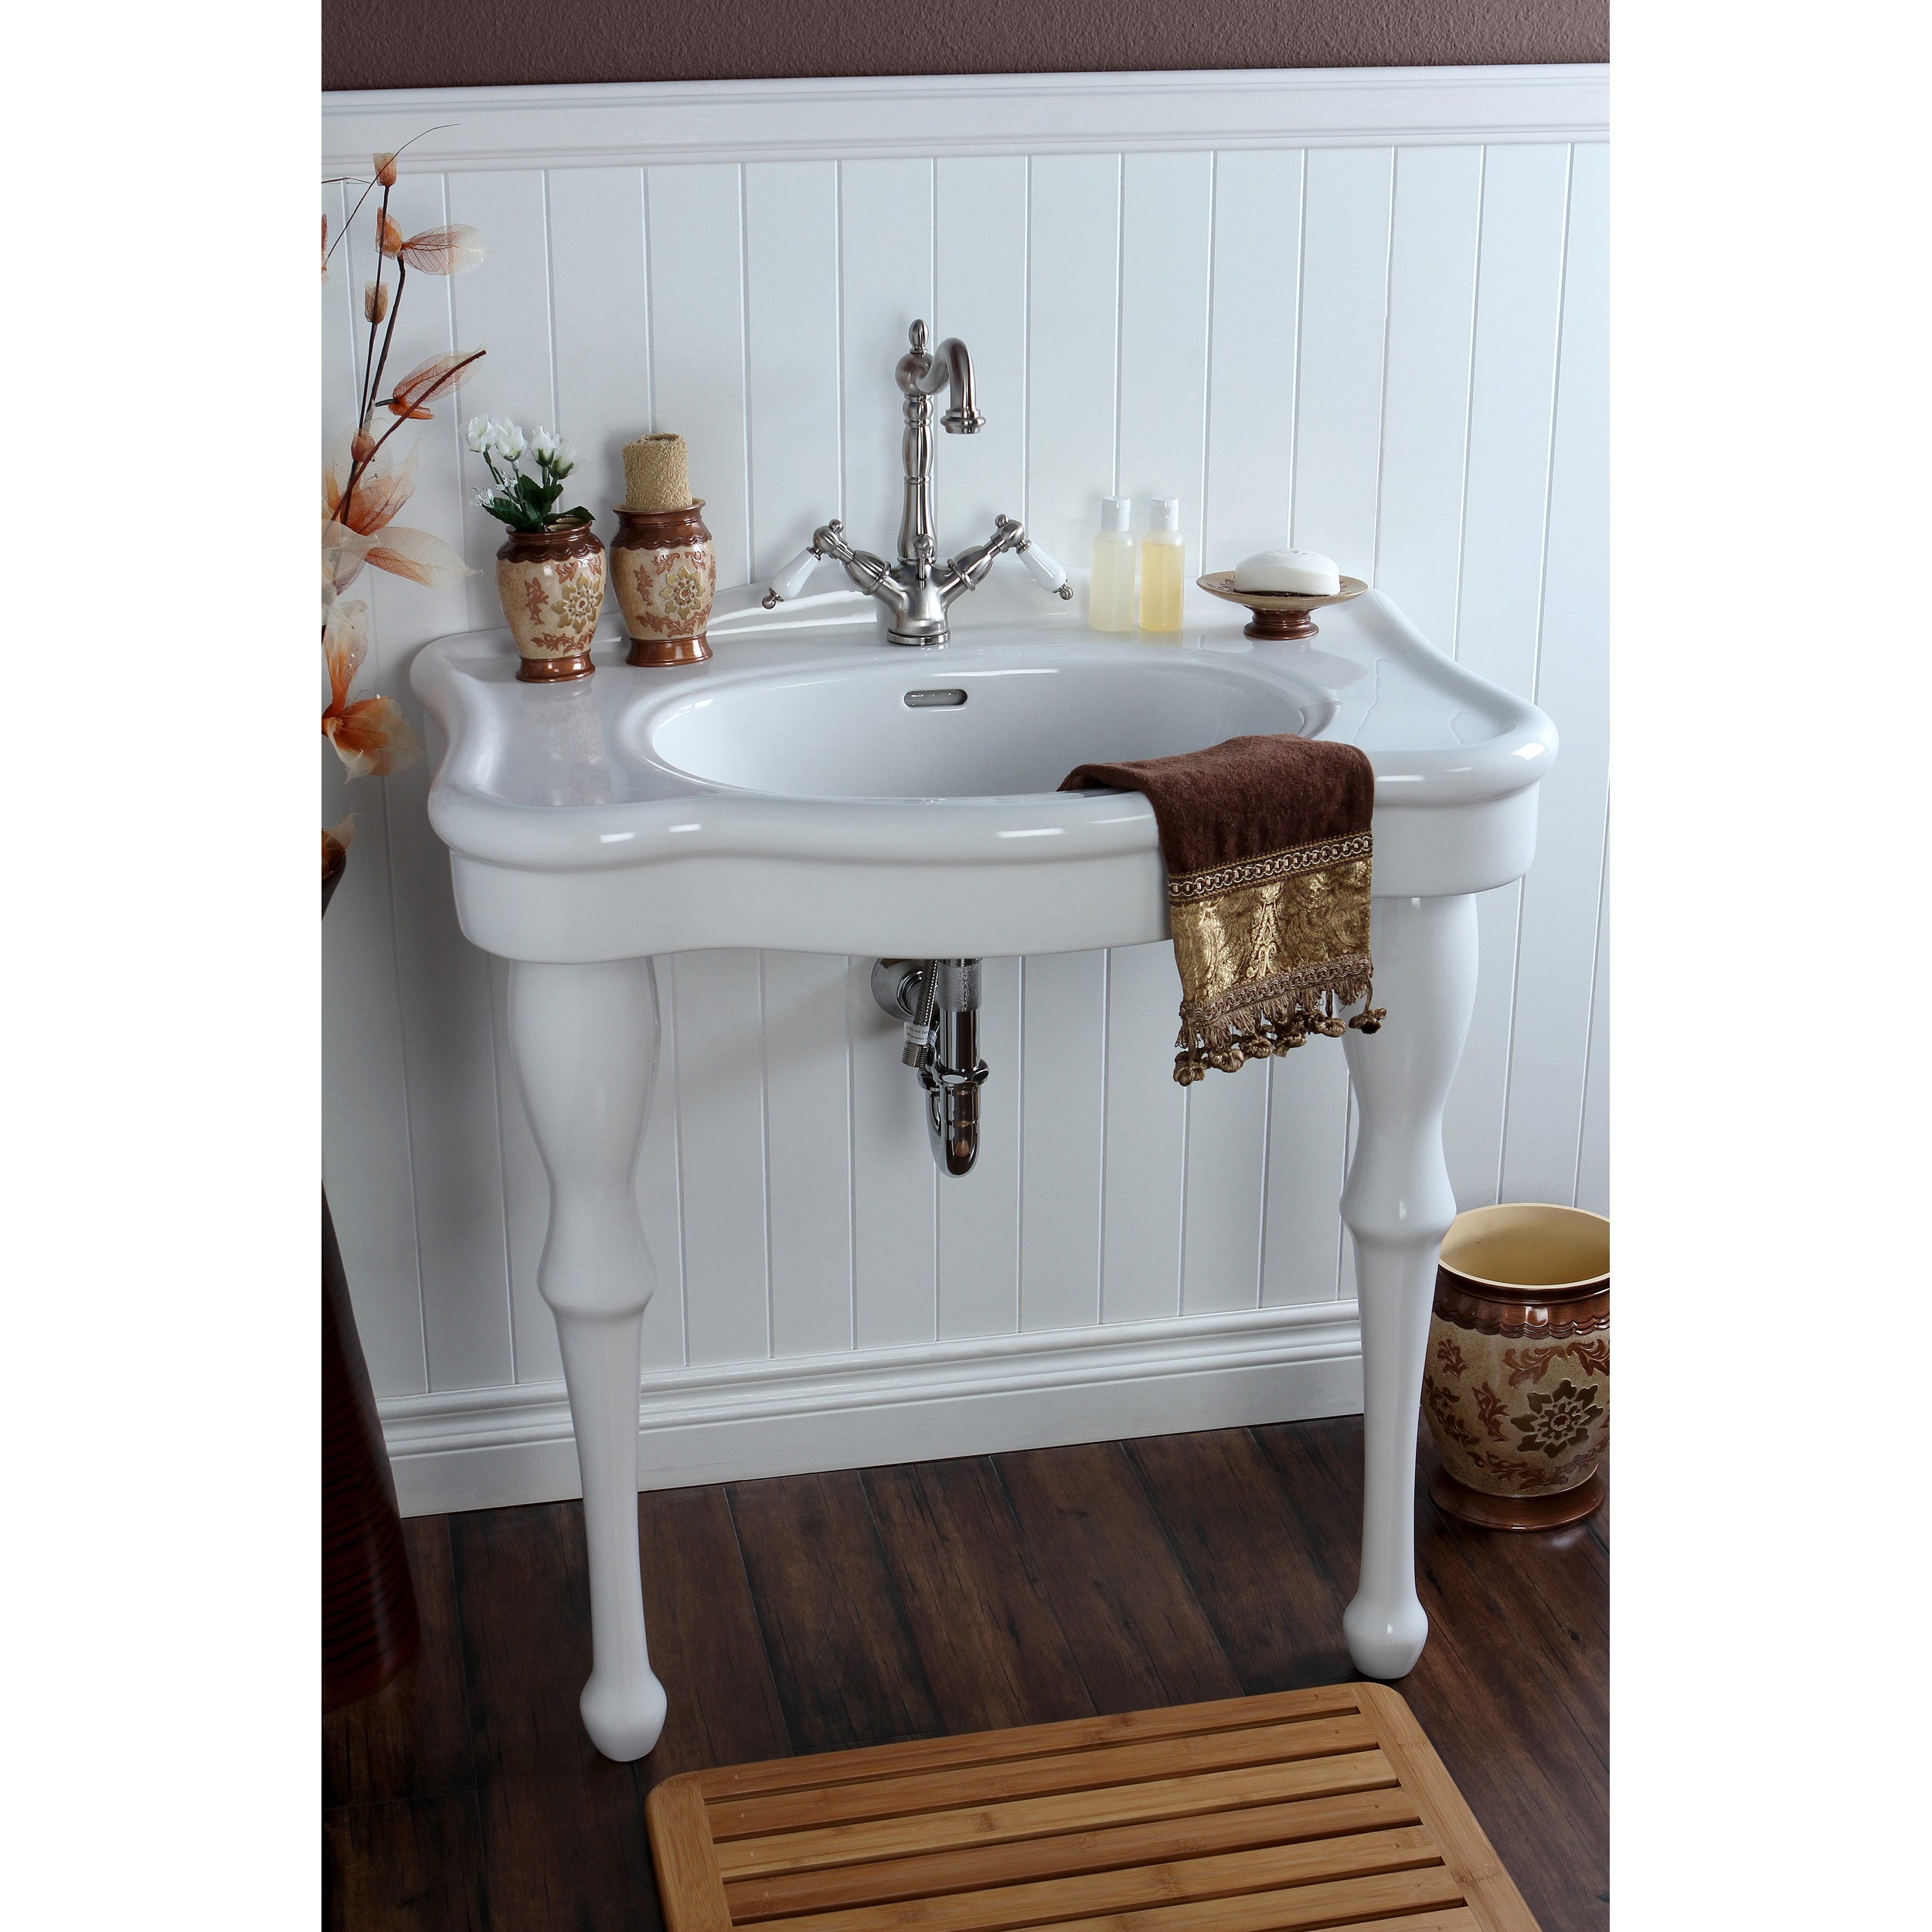 Shop vintage 32 inch for single hole wall mount pedestal bathroom sink vanity free shipping today overstock com 8036004